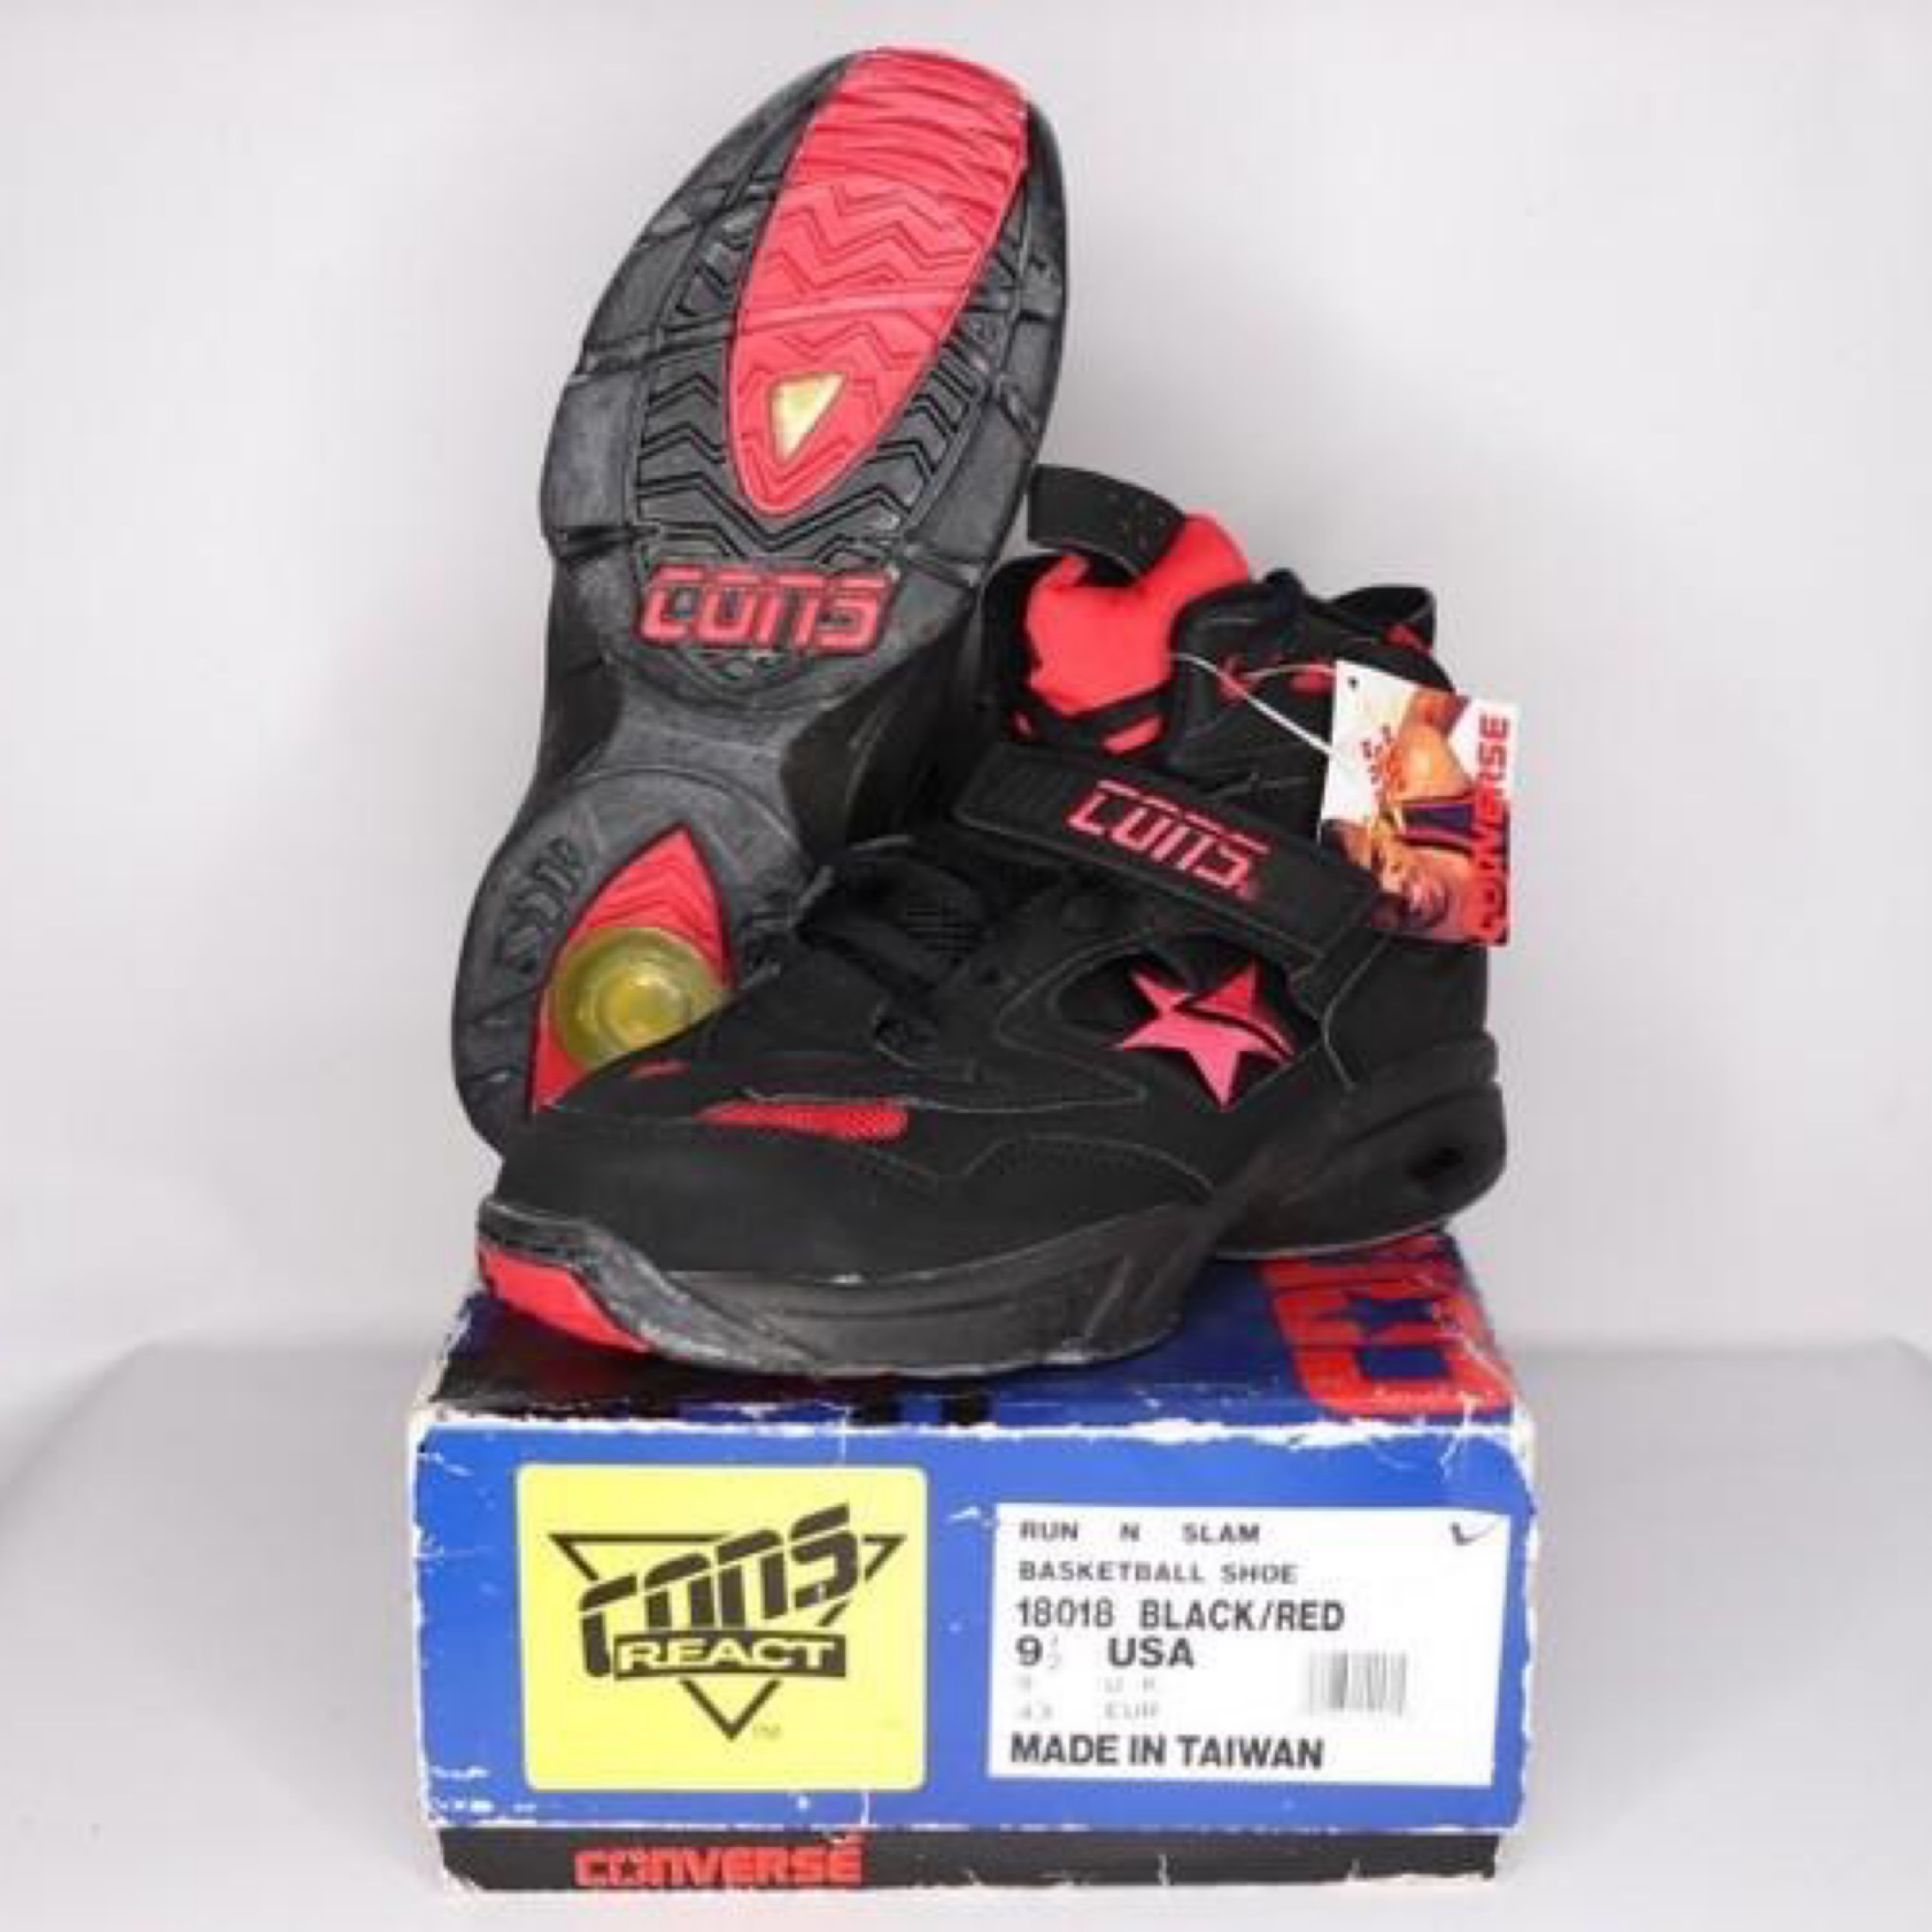 converse basketball shoes 90s Online